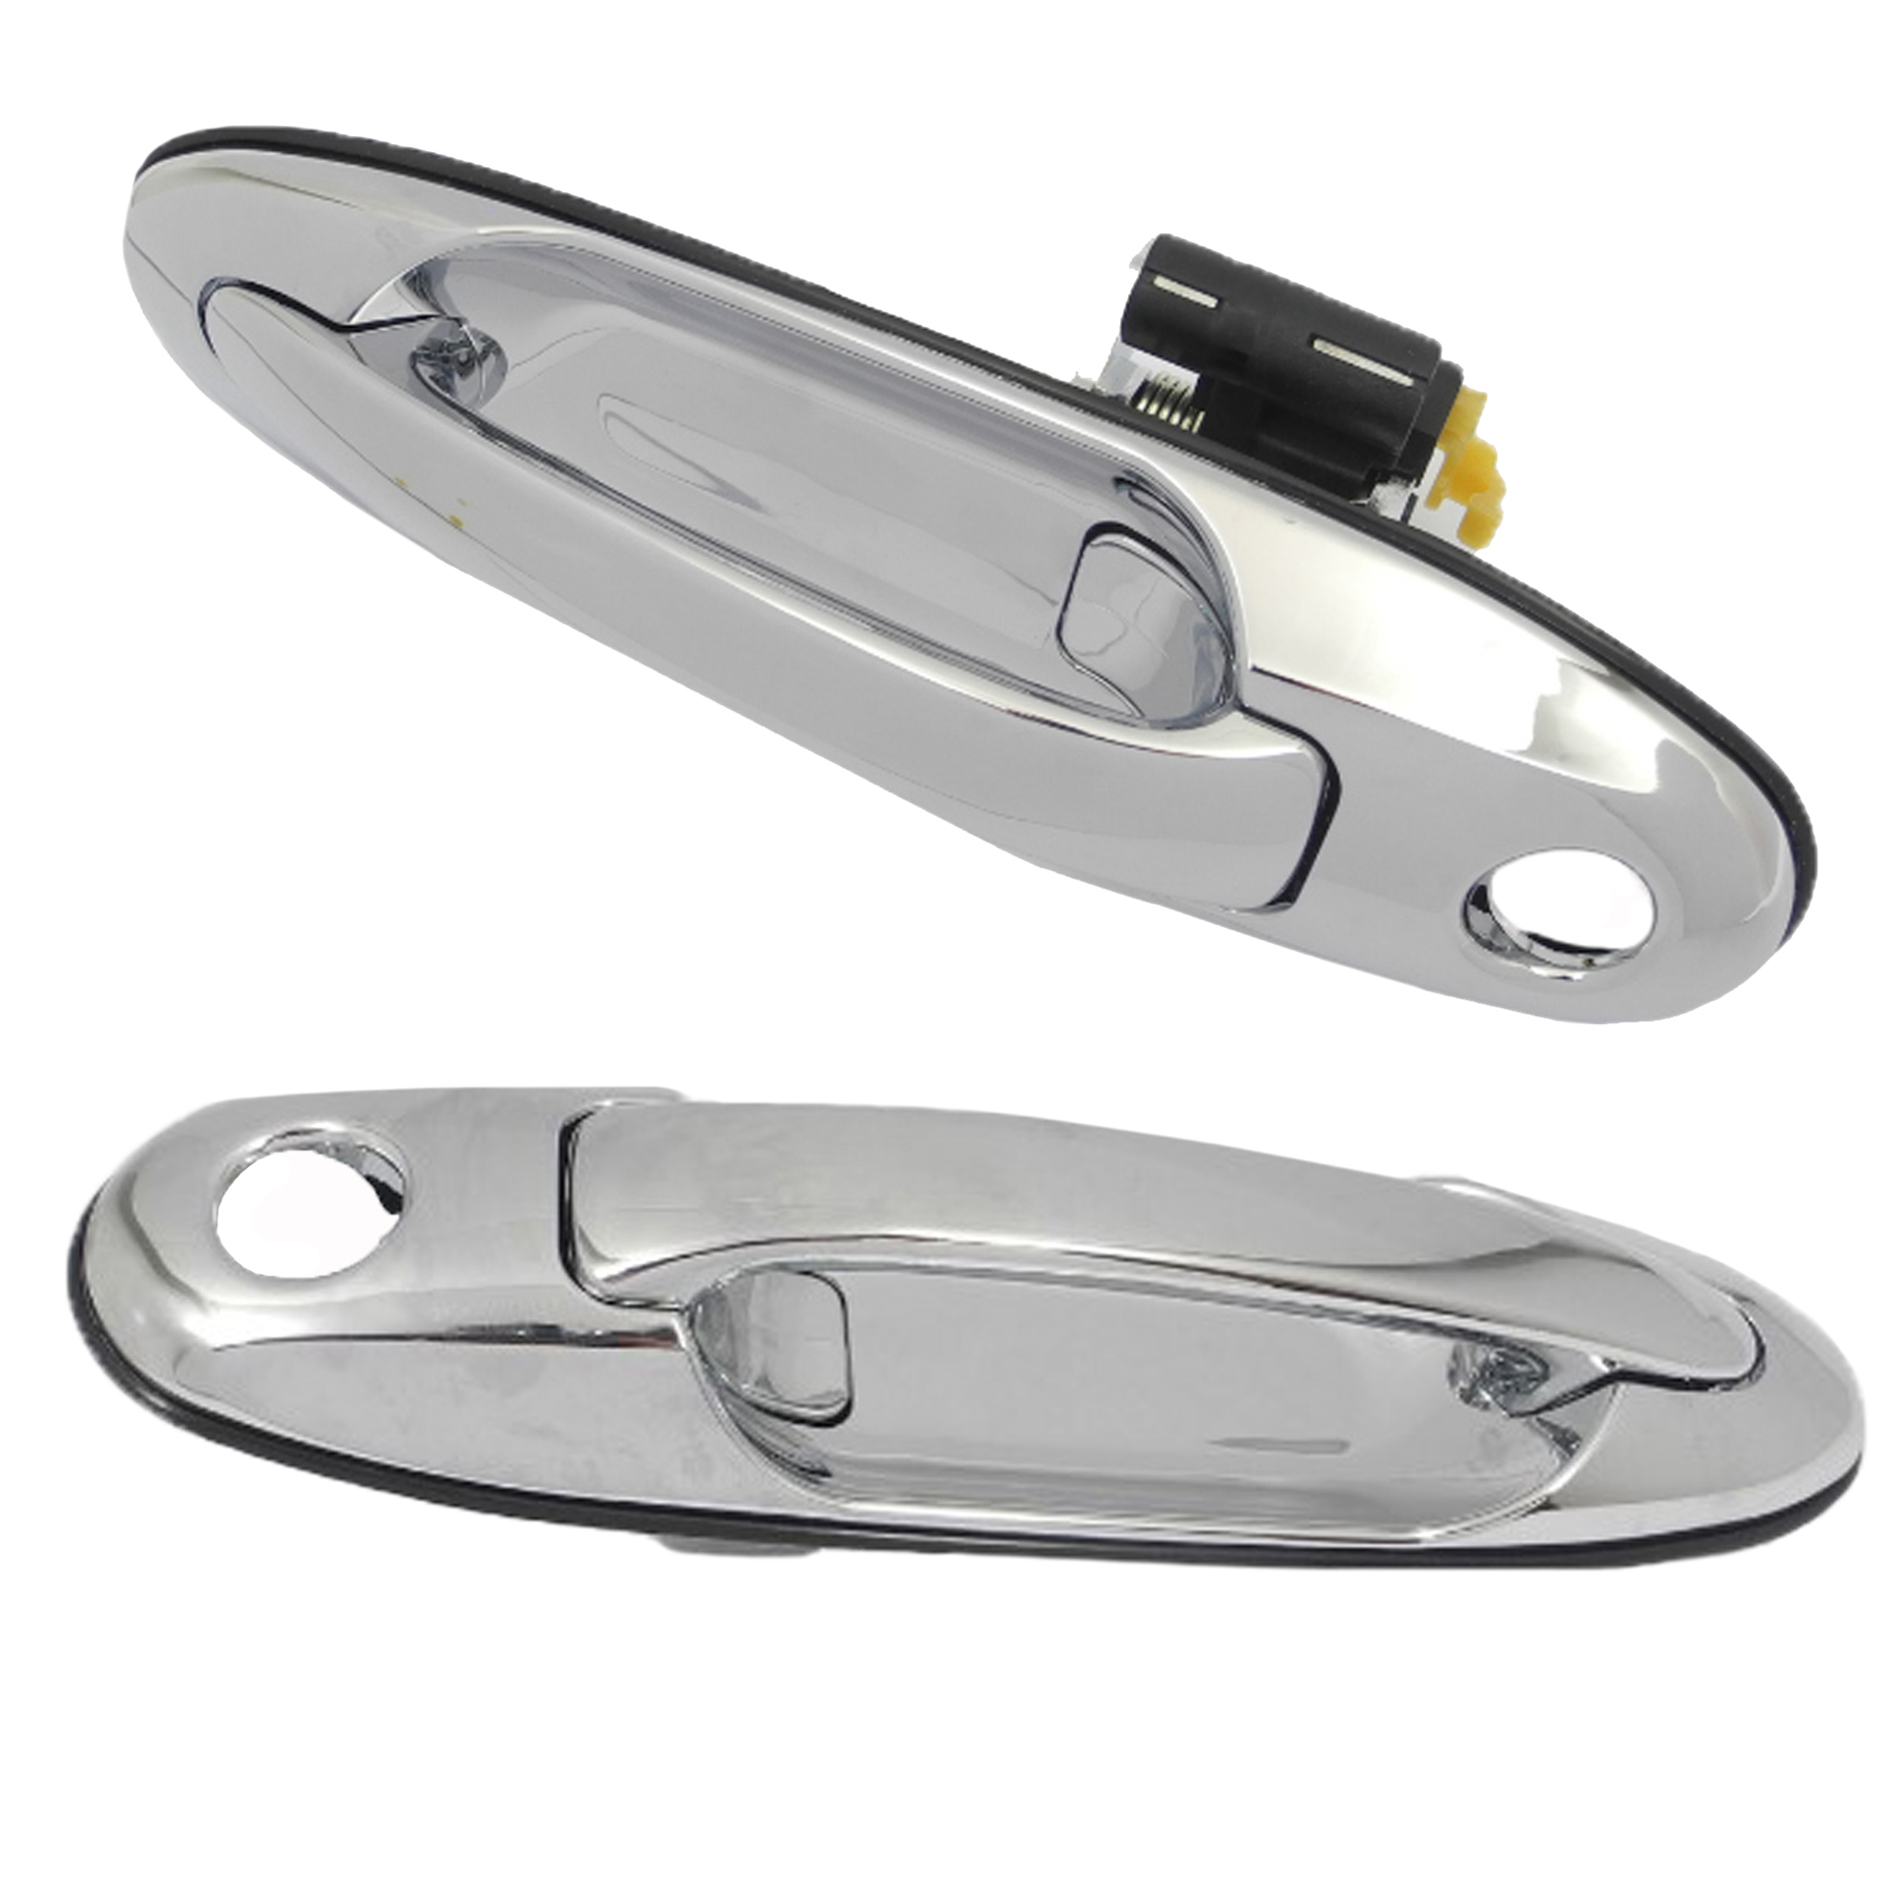 New Front Or Rear Driver Side Door Handle For Toyota Sequoia 2001-2007